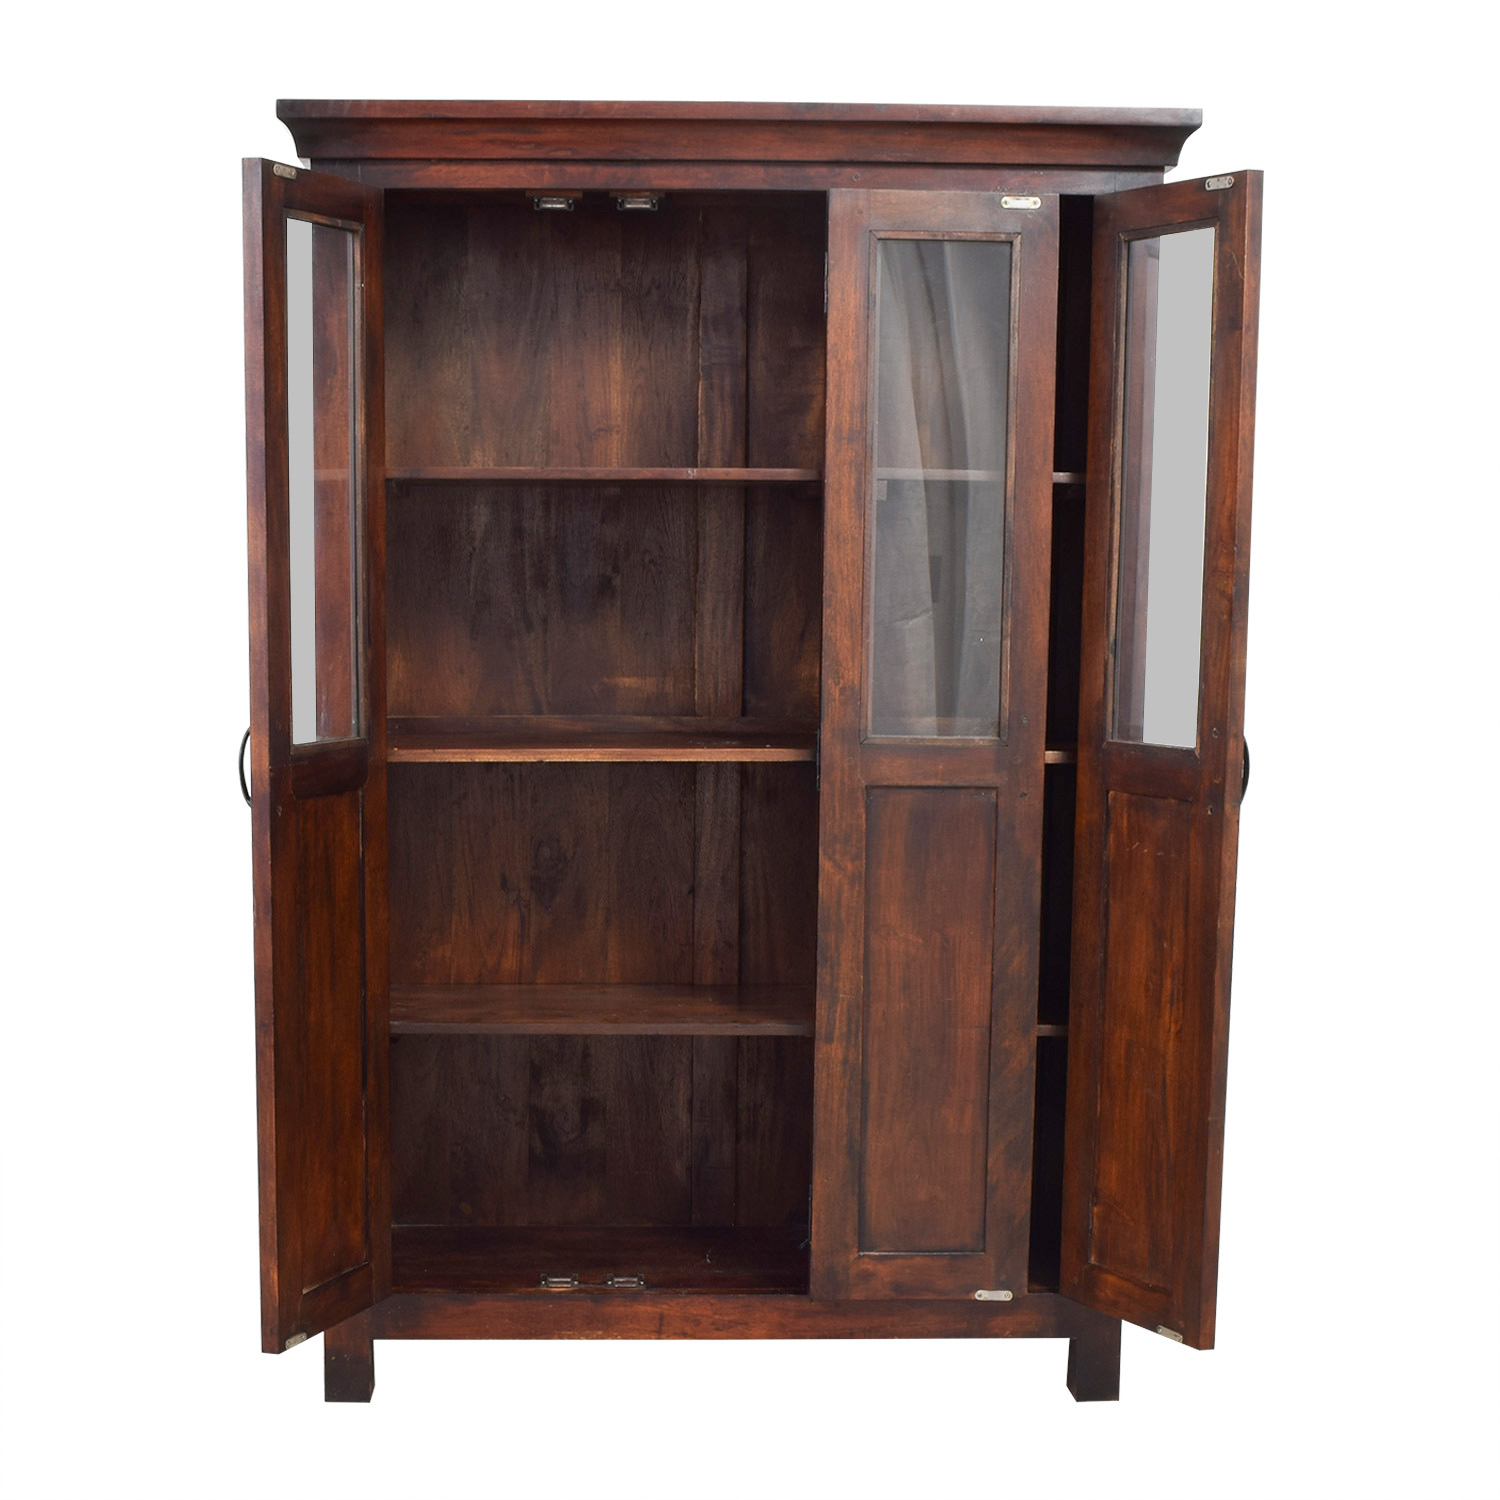 Crate & Barrel Wood China Cabinet / Storage